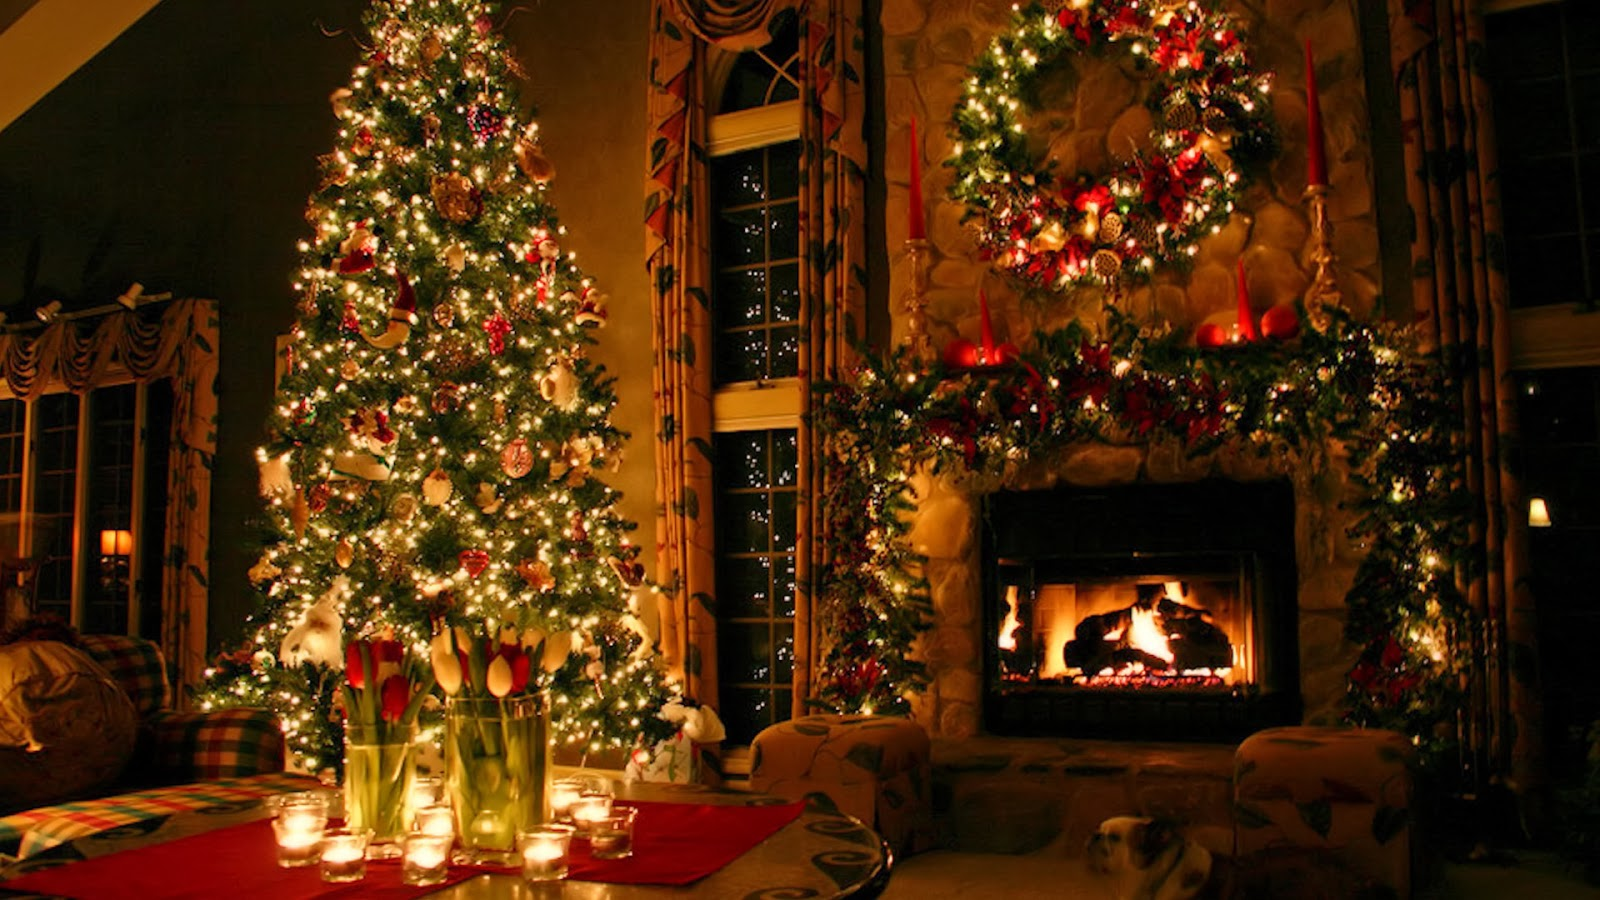 Christmas decorations ideas world top blogger for Christmas decorations for home interior